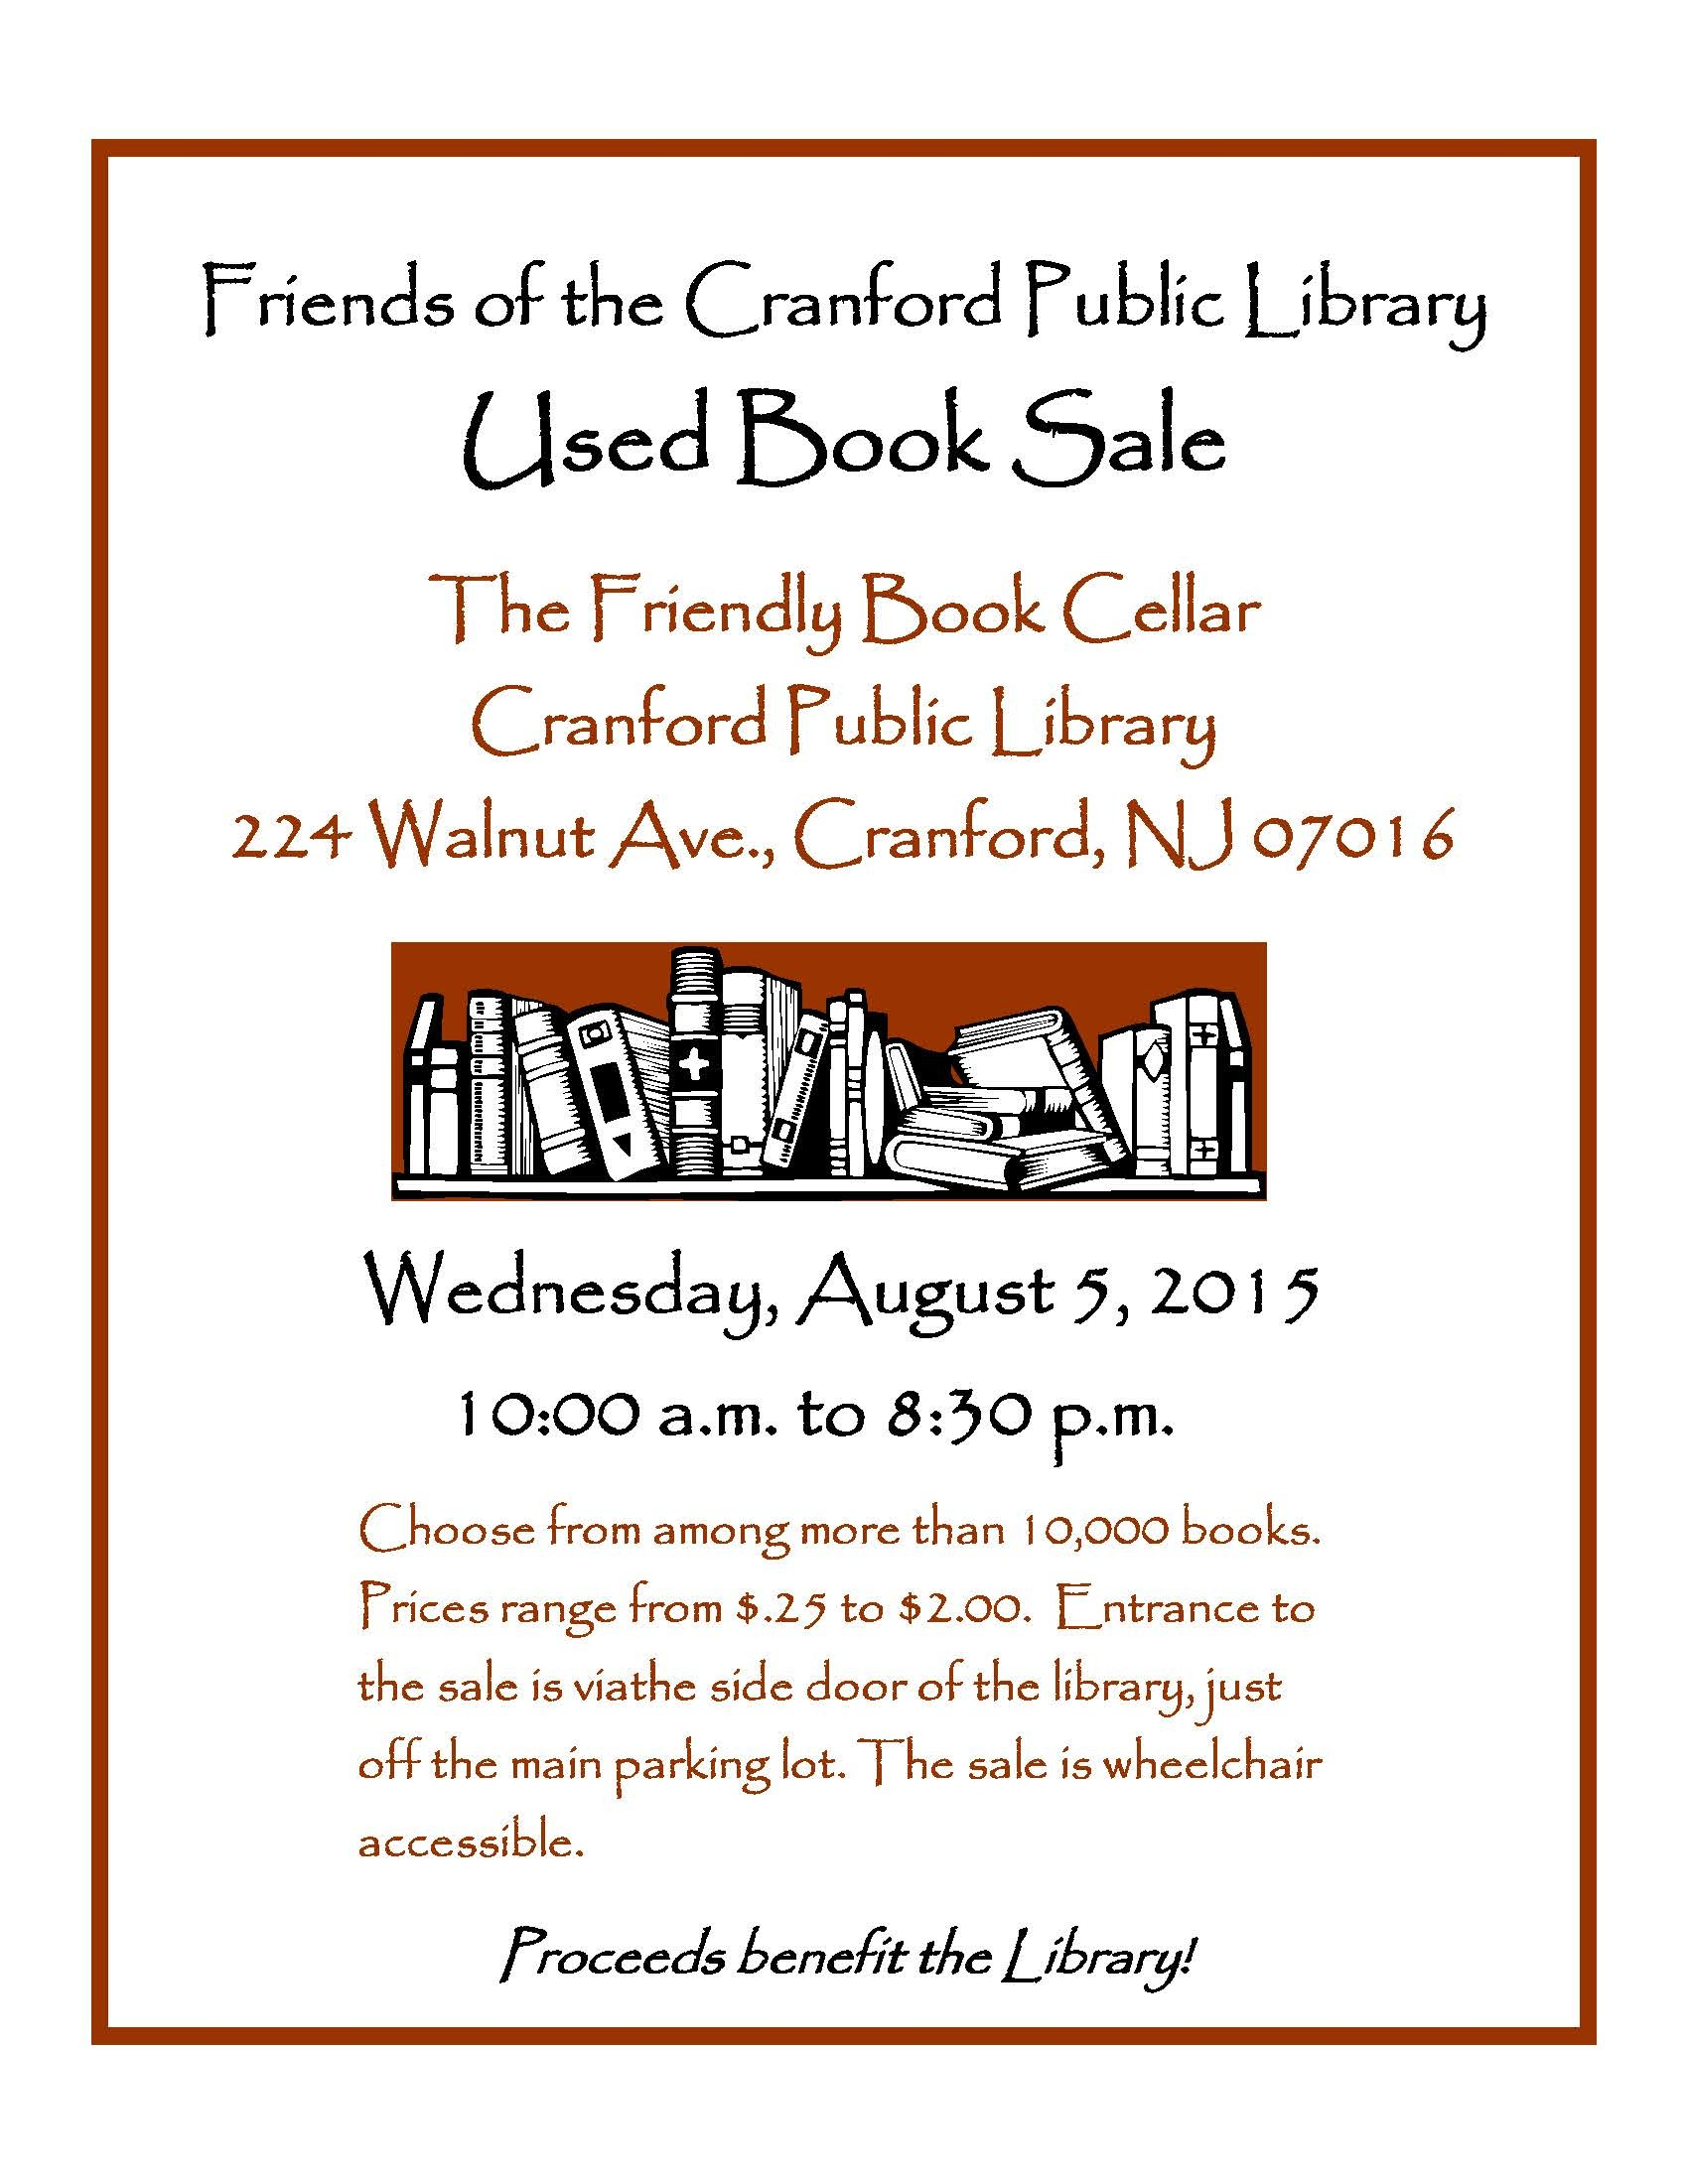 a8d01047b34d6245f2a2_Friends_of_the_Cranford_Library_August_Book_Sale.jpg